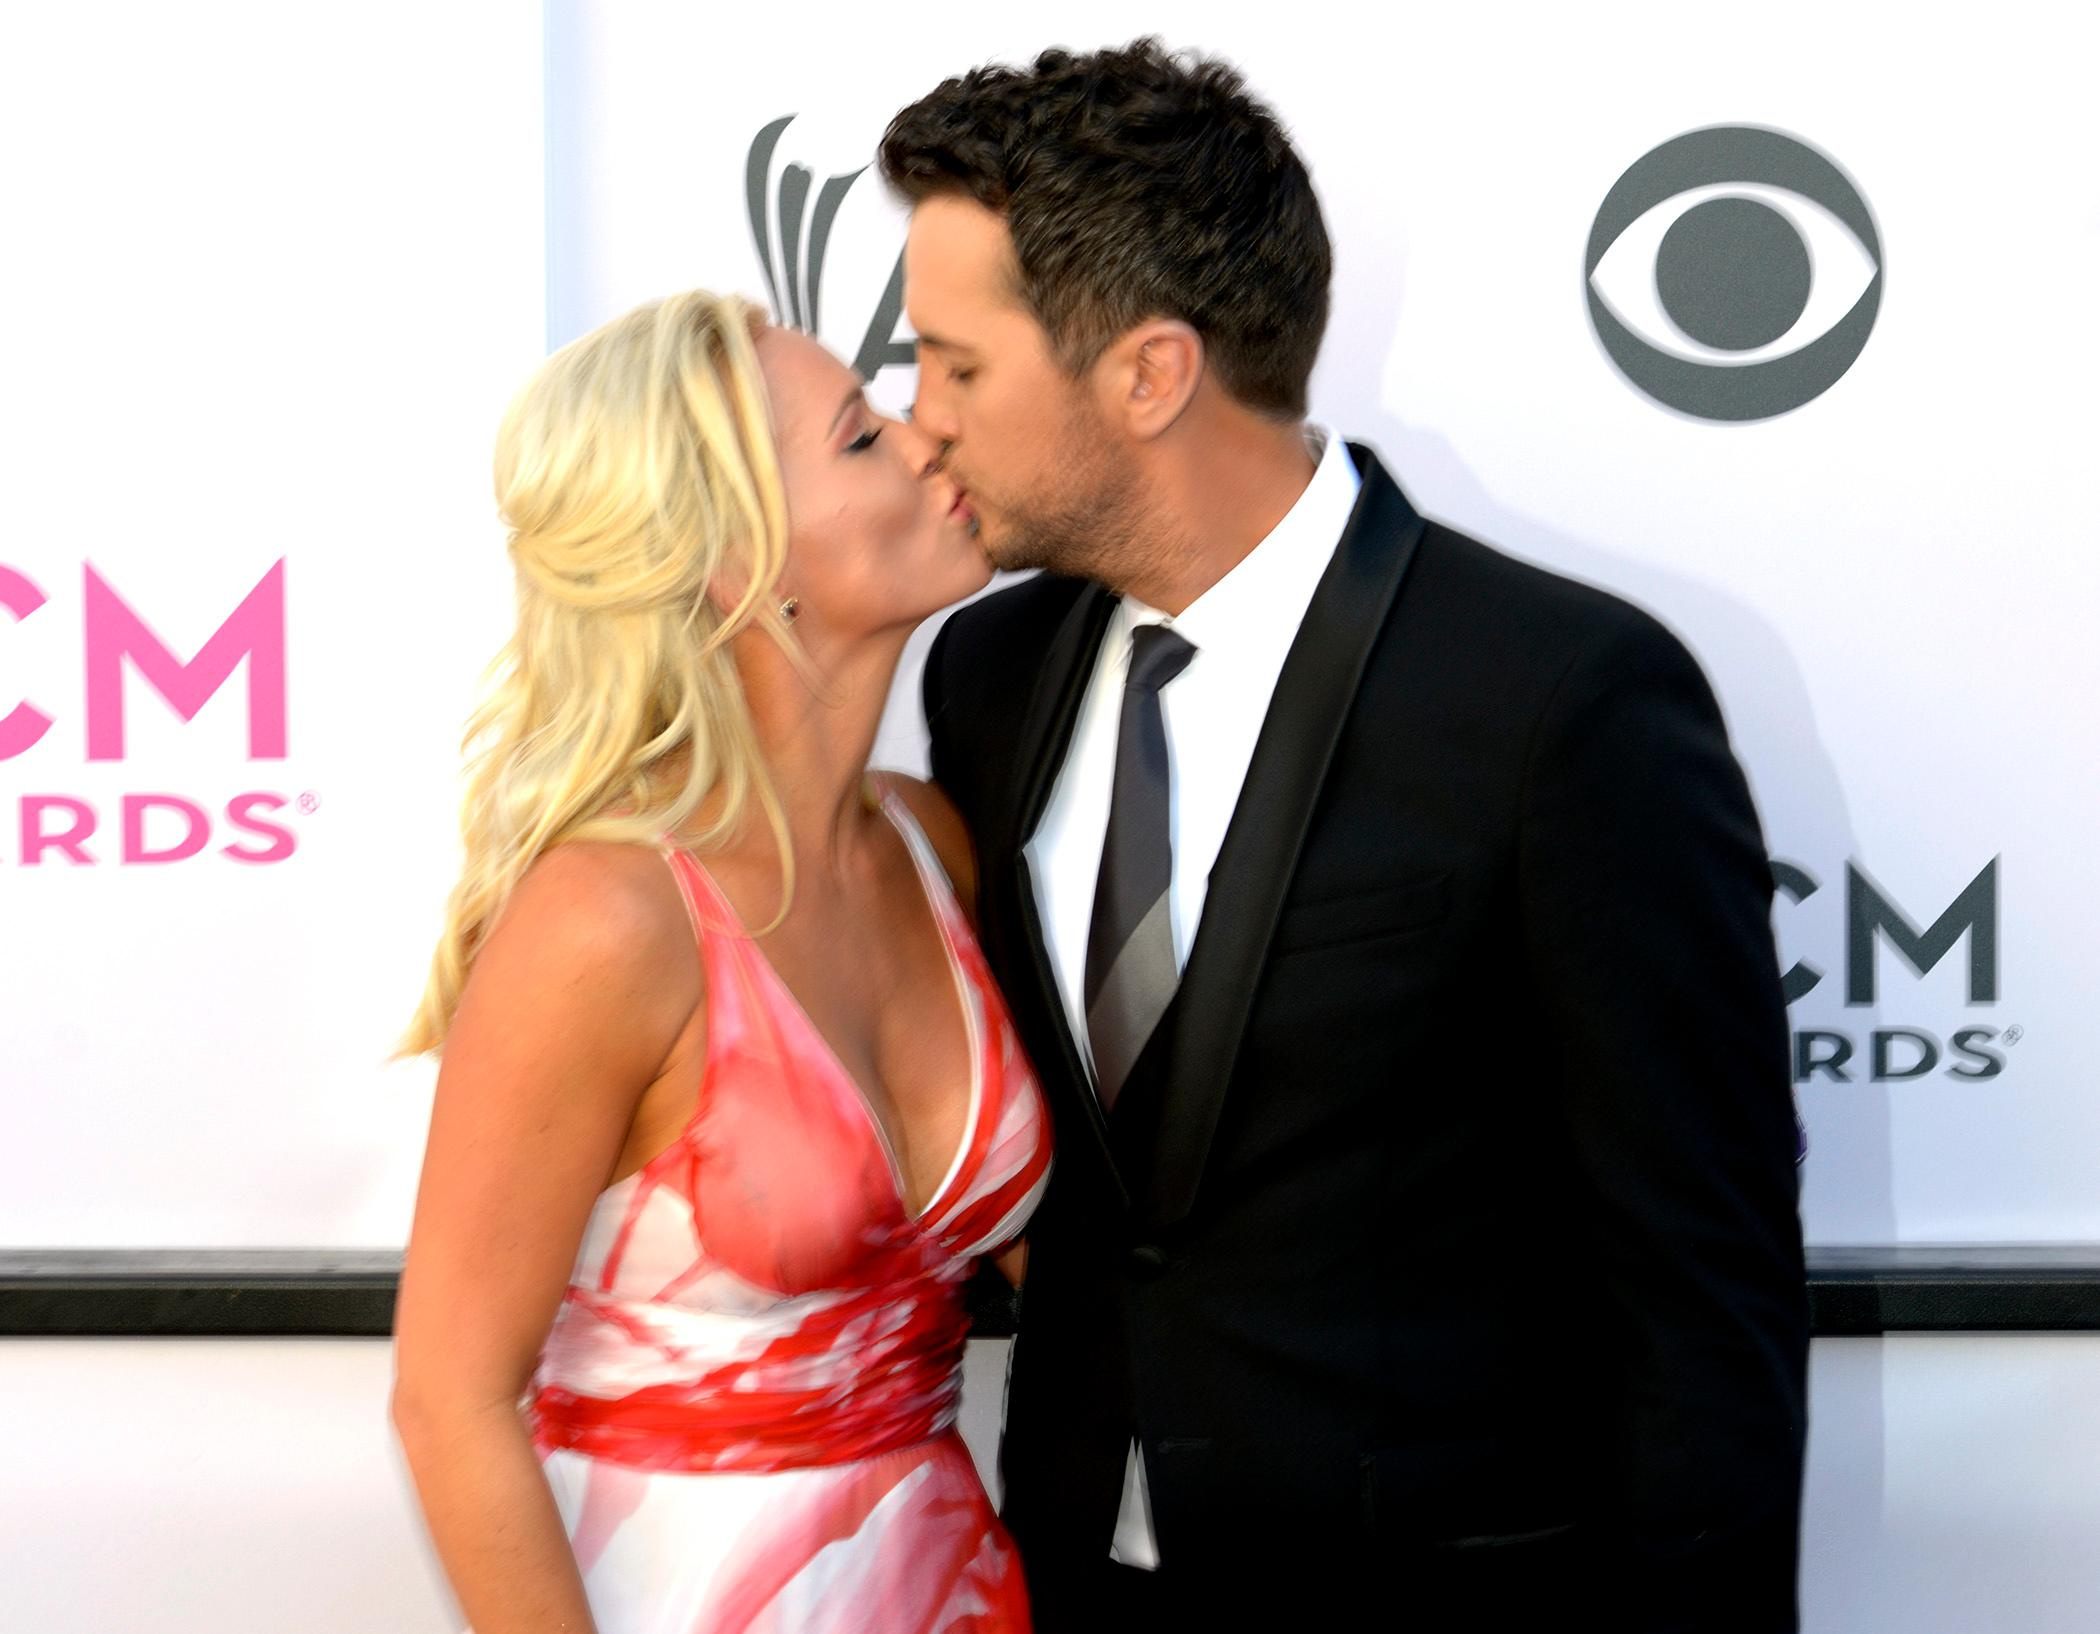 Spring is in the air as Luke Bryan host and nominee for Performer Entertainer of the Year at the Academy of Country Music Awards kisses wife Caroline Boyer on the red carpet at T-Mobile Arena. Sunday, April 2, 2017. (Glenn Pinkerton/ Las Vegas News Bureau)